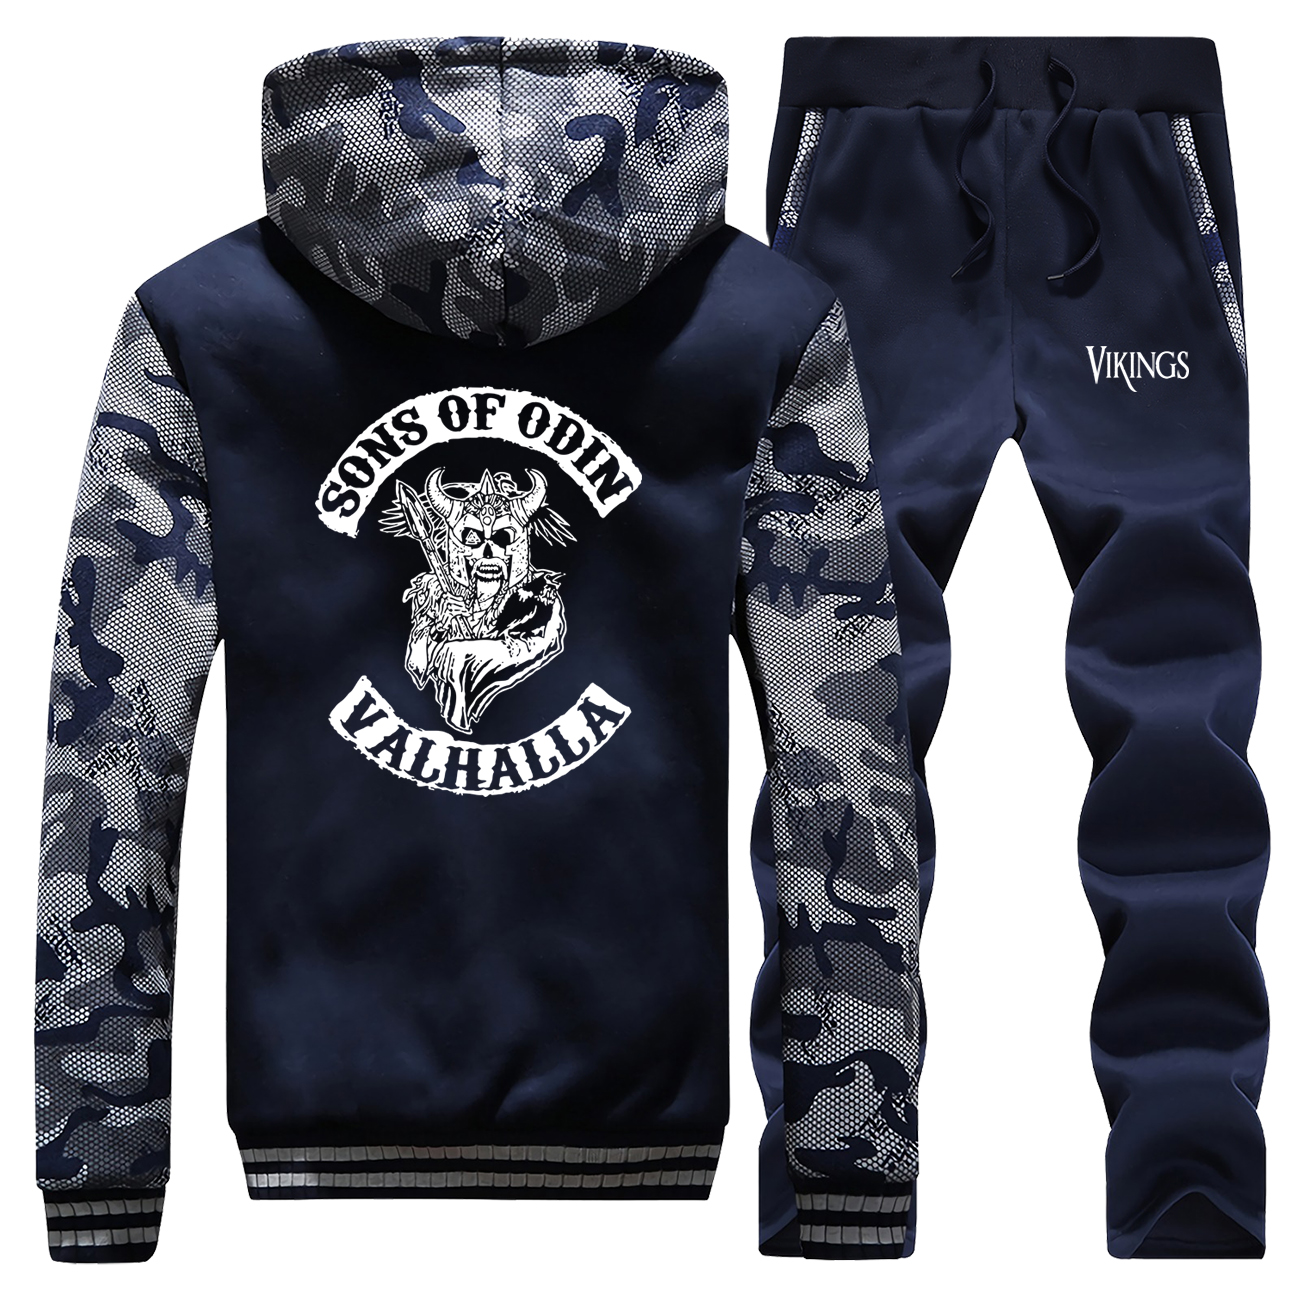 Sons Of Odin Valhalla Chapter Camouflage Thick Hoodies Mens Sweatshirt+Pants 2 Piece Sets Men Fleece Warm Coats Winter Jacket